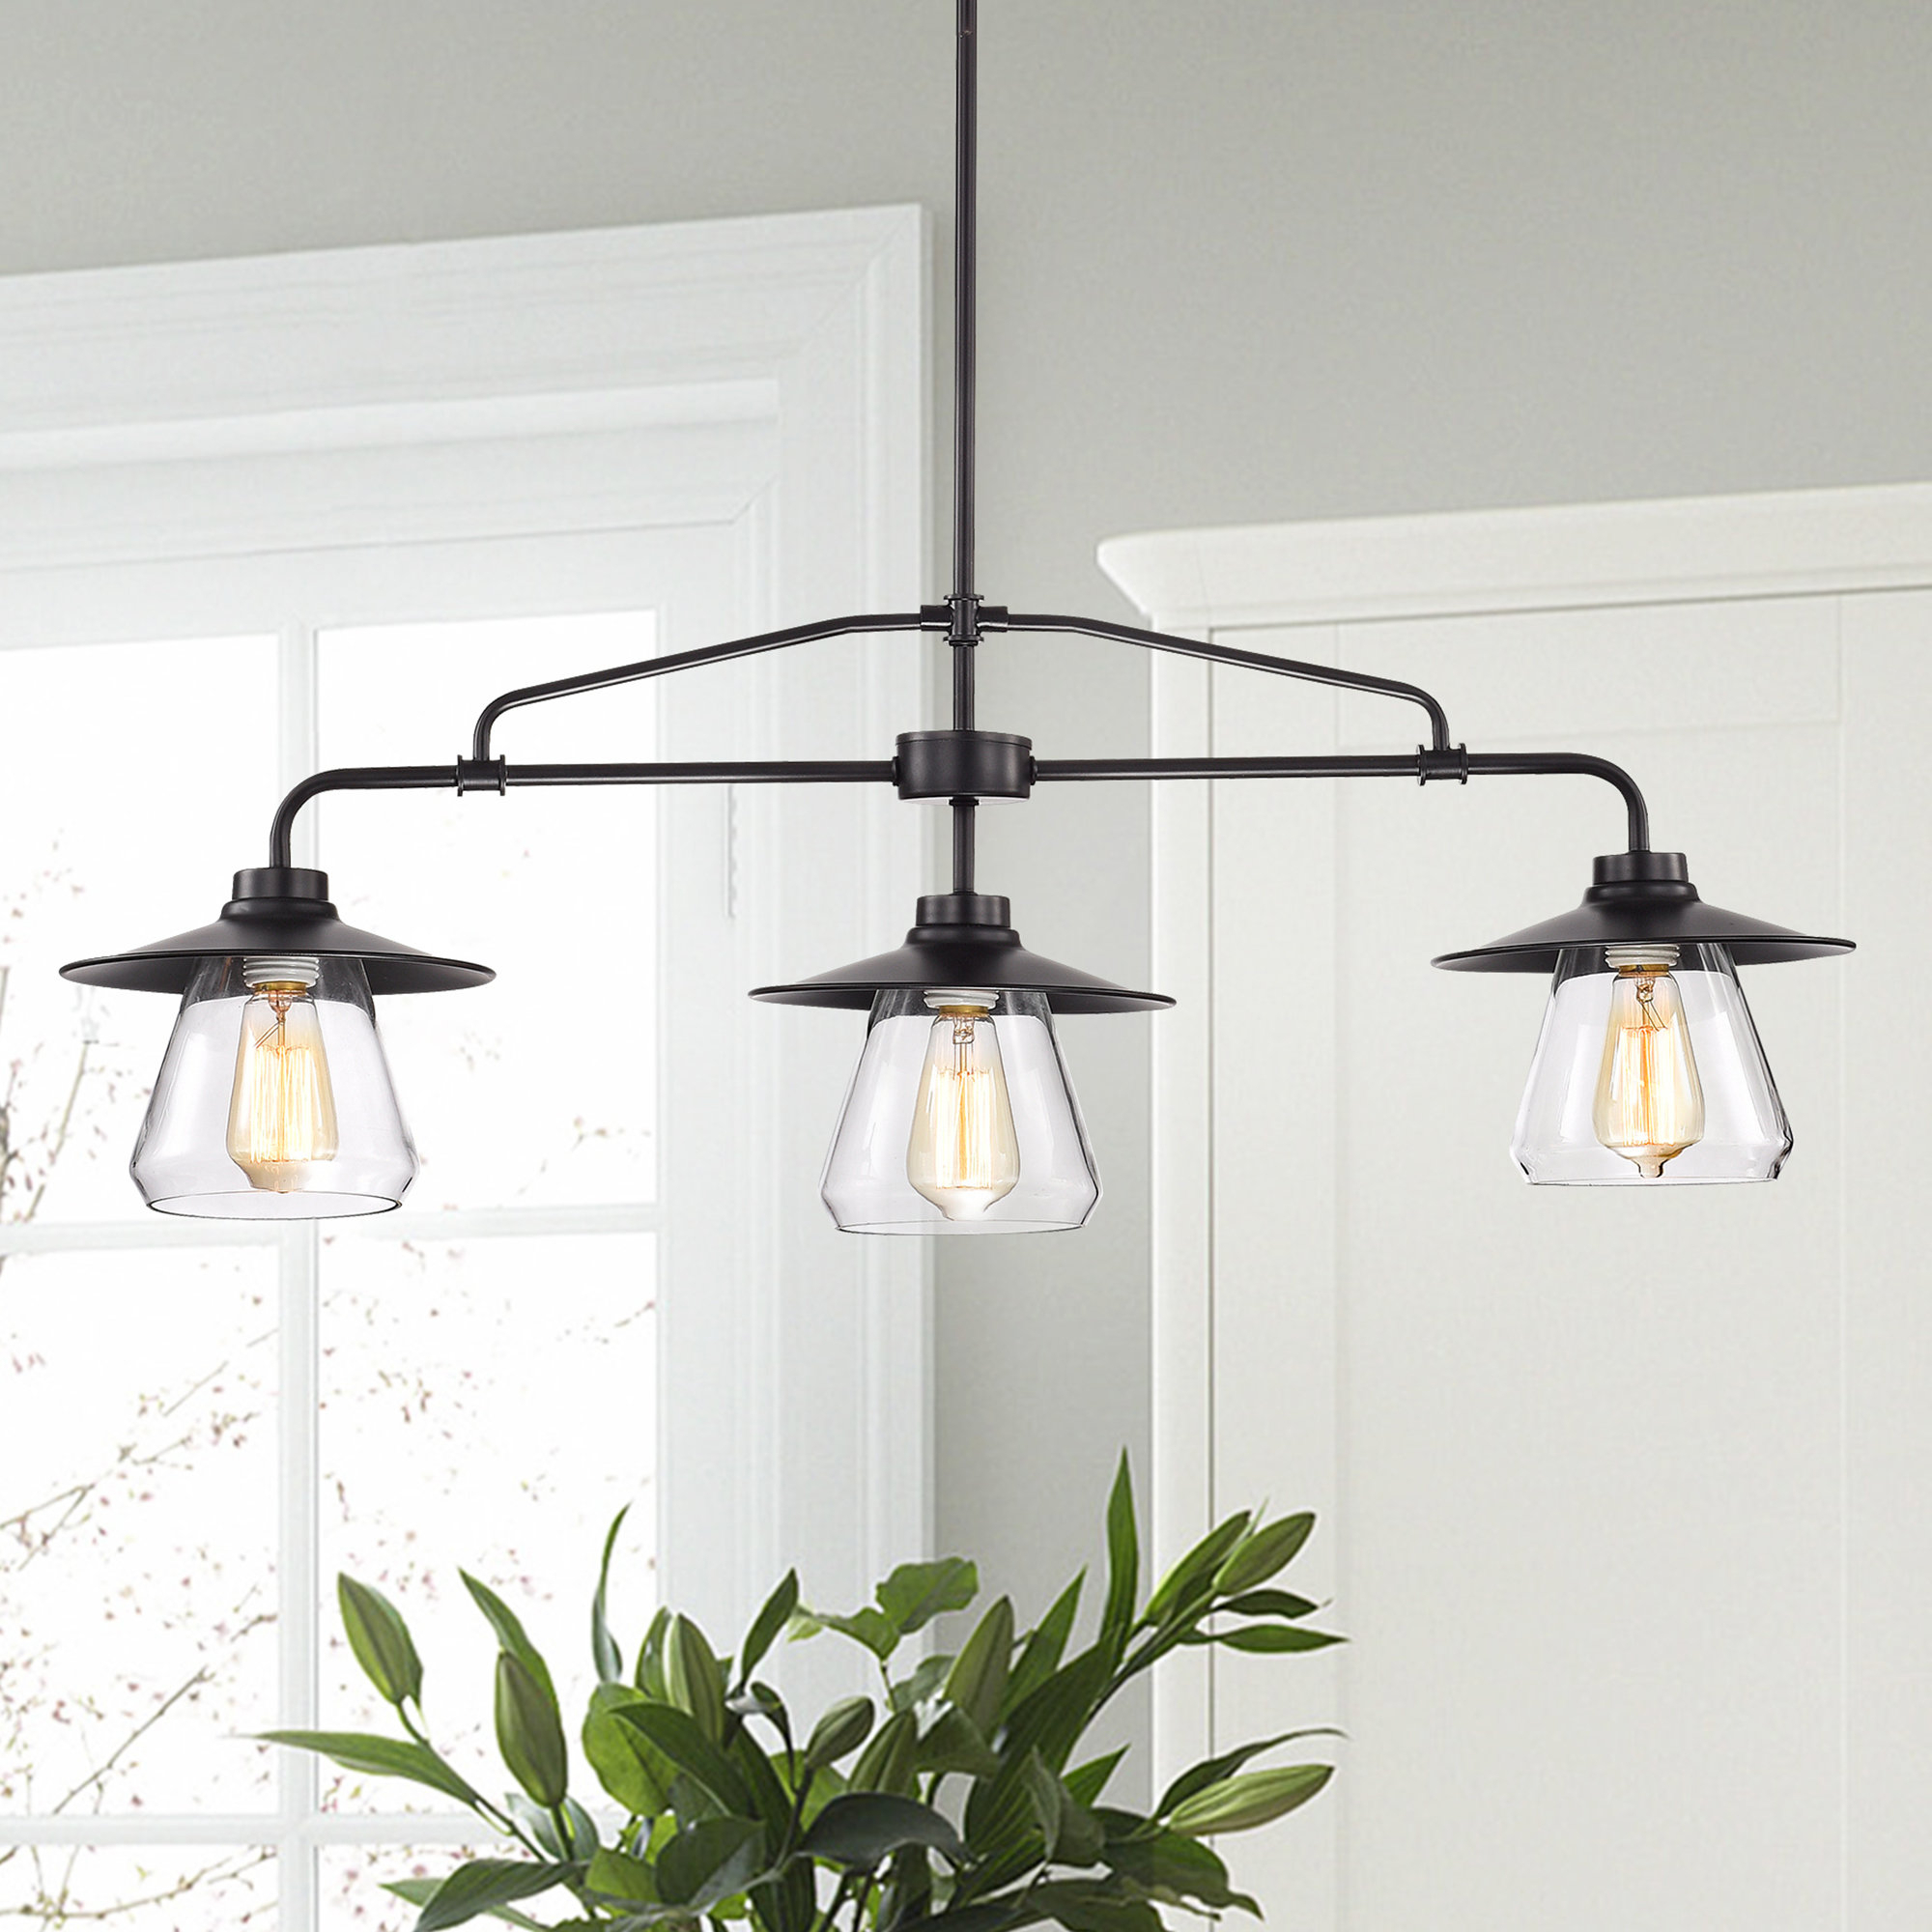 Kitchen Island Pendant Lighting Fixtures – Gnubies Inside Most Up To Date Ariel 2 Light Kitchen Island Dome Pendants (View 12 of 25)